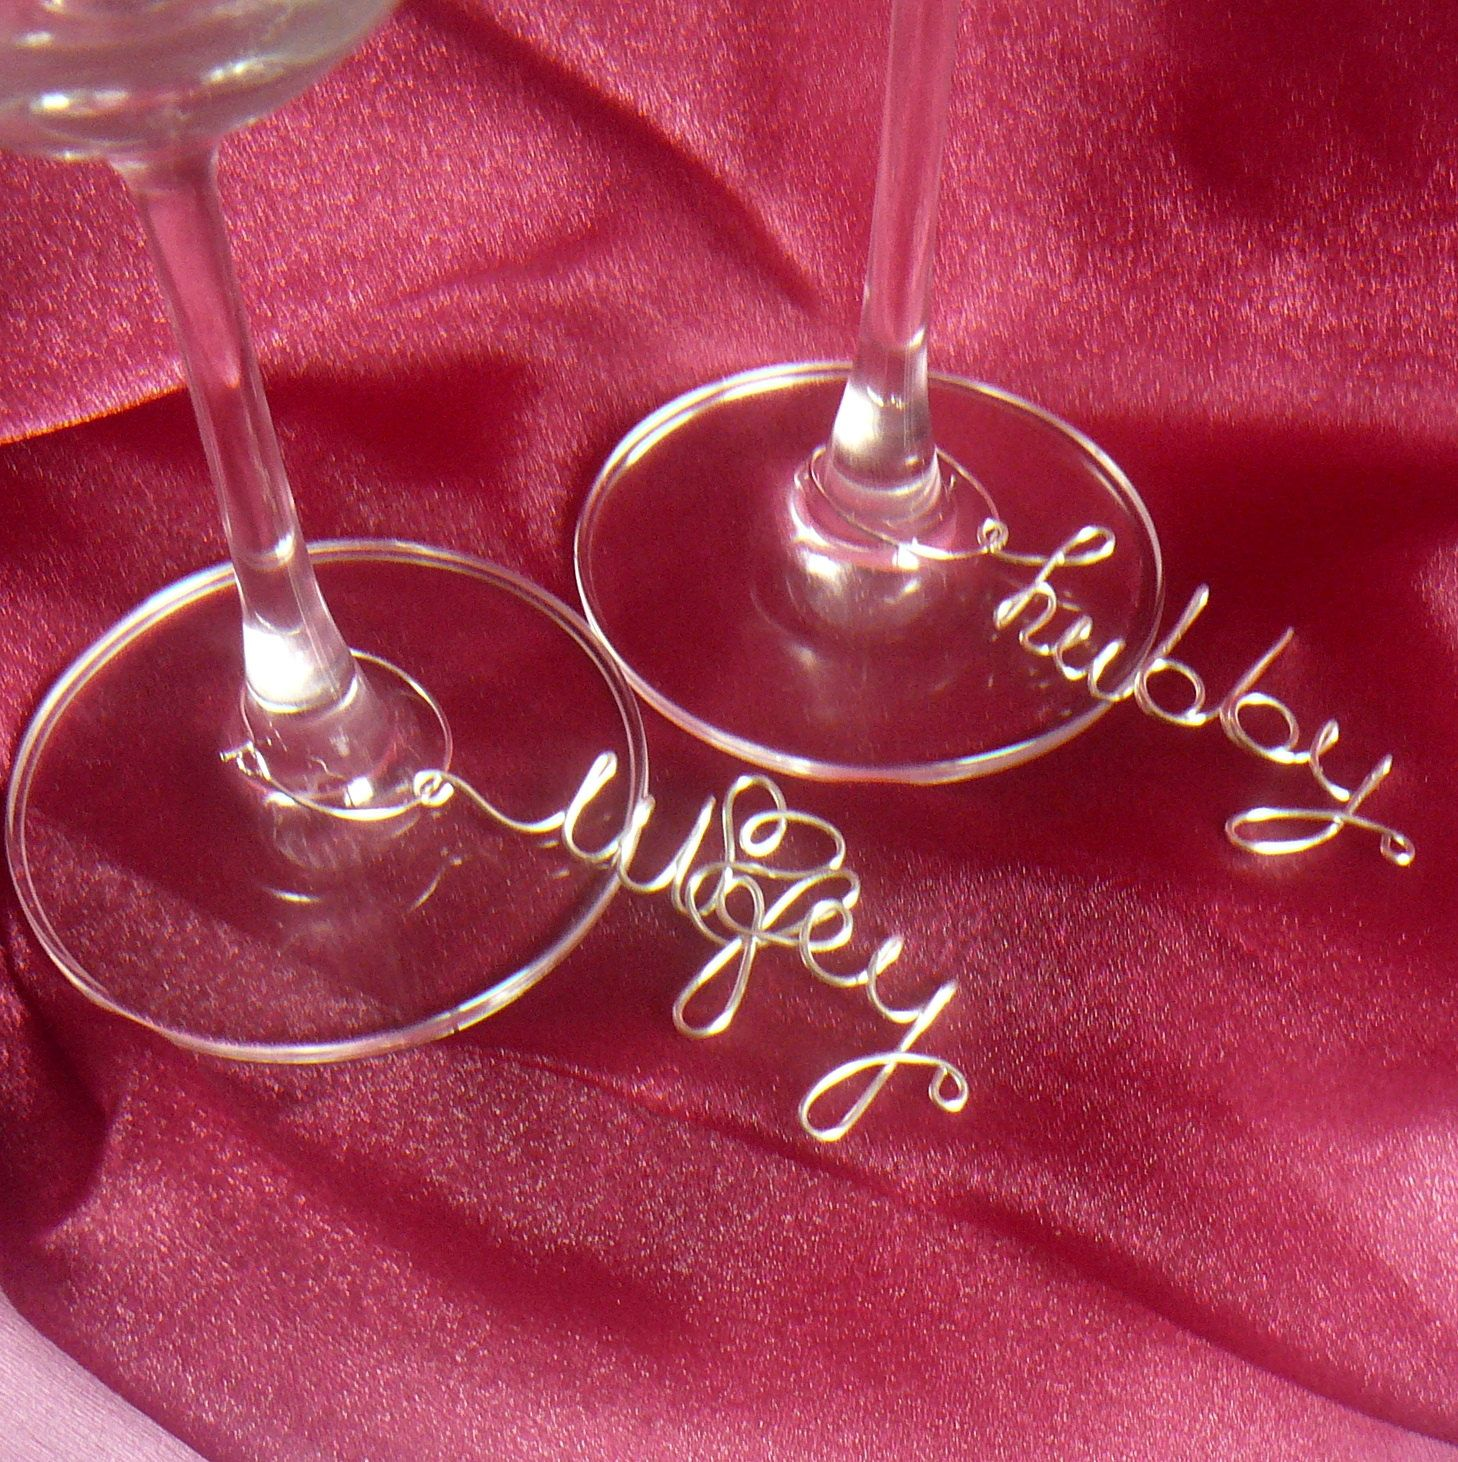 Unusual Wedding Decorations | Request a custom order and have ...